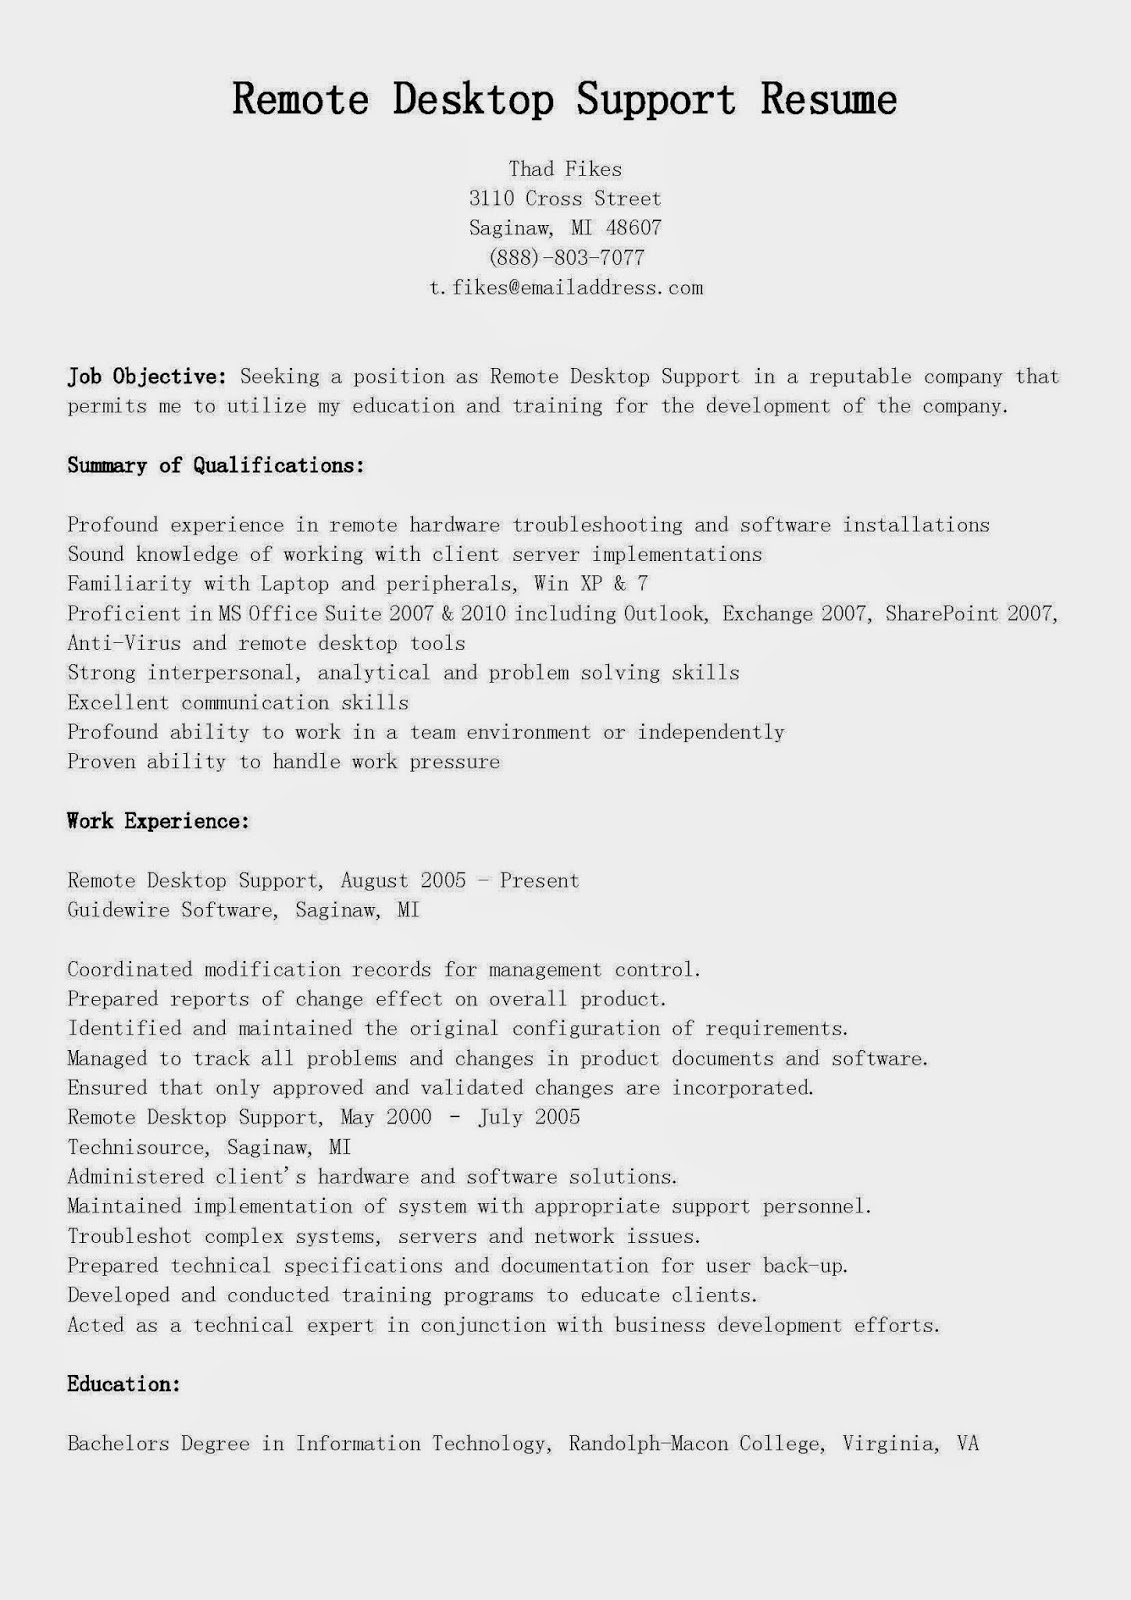 sample resume for remote desktop support